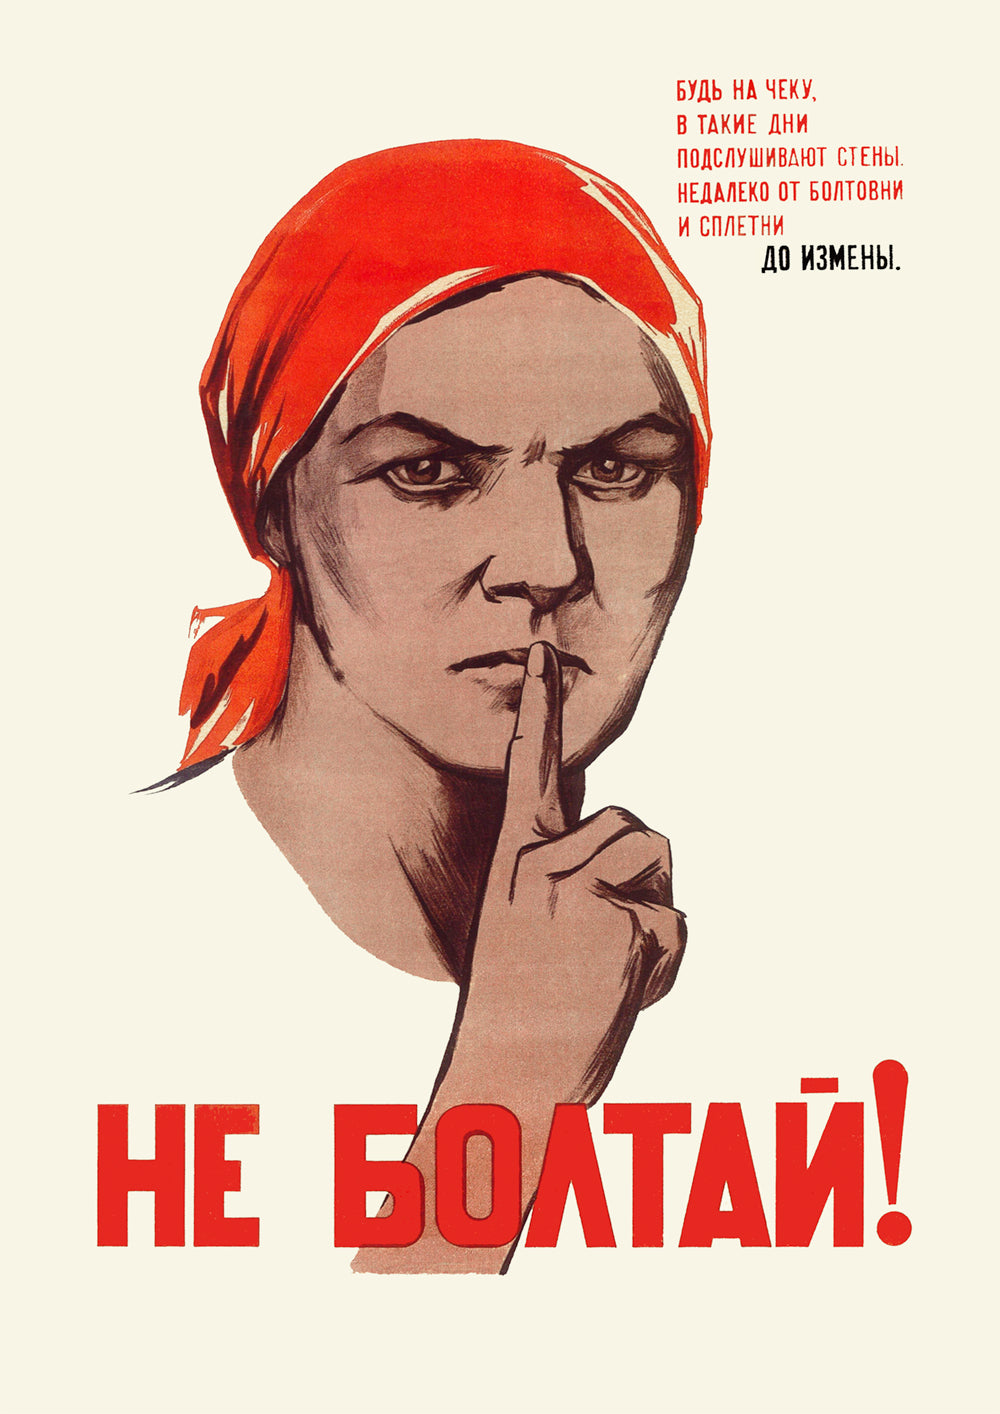 Keep quiet! – Soviet World War 2 poster